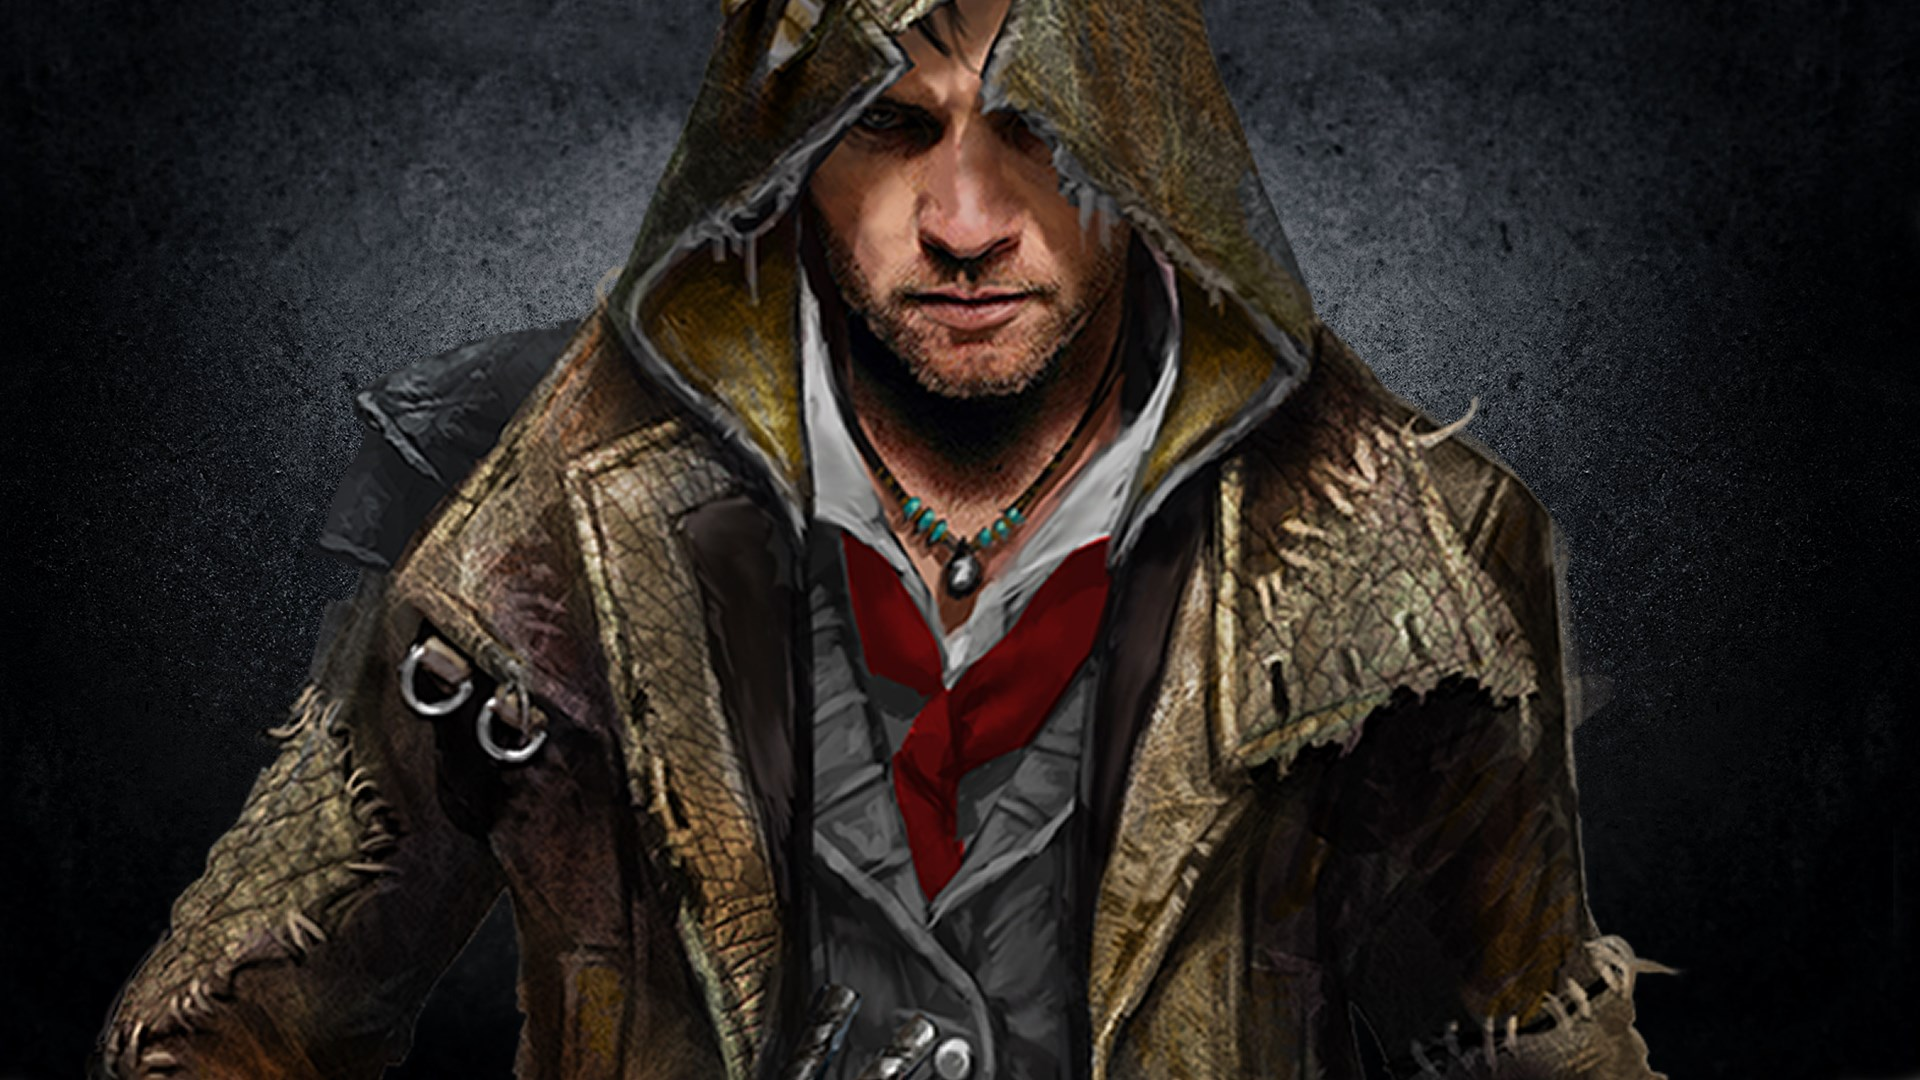 Assassin's Creed® Syndicate - Victorian Legends Outfit for Jacob